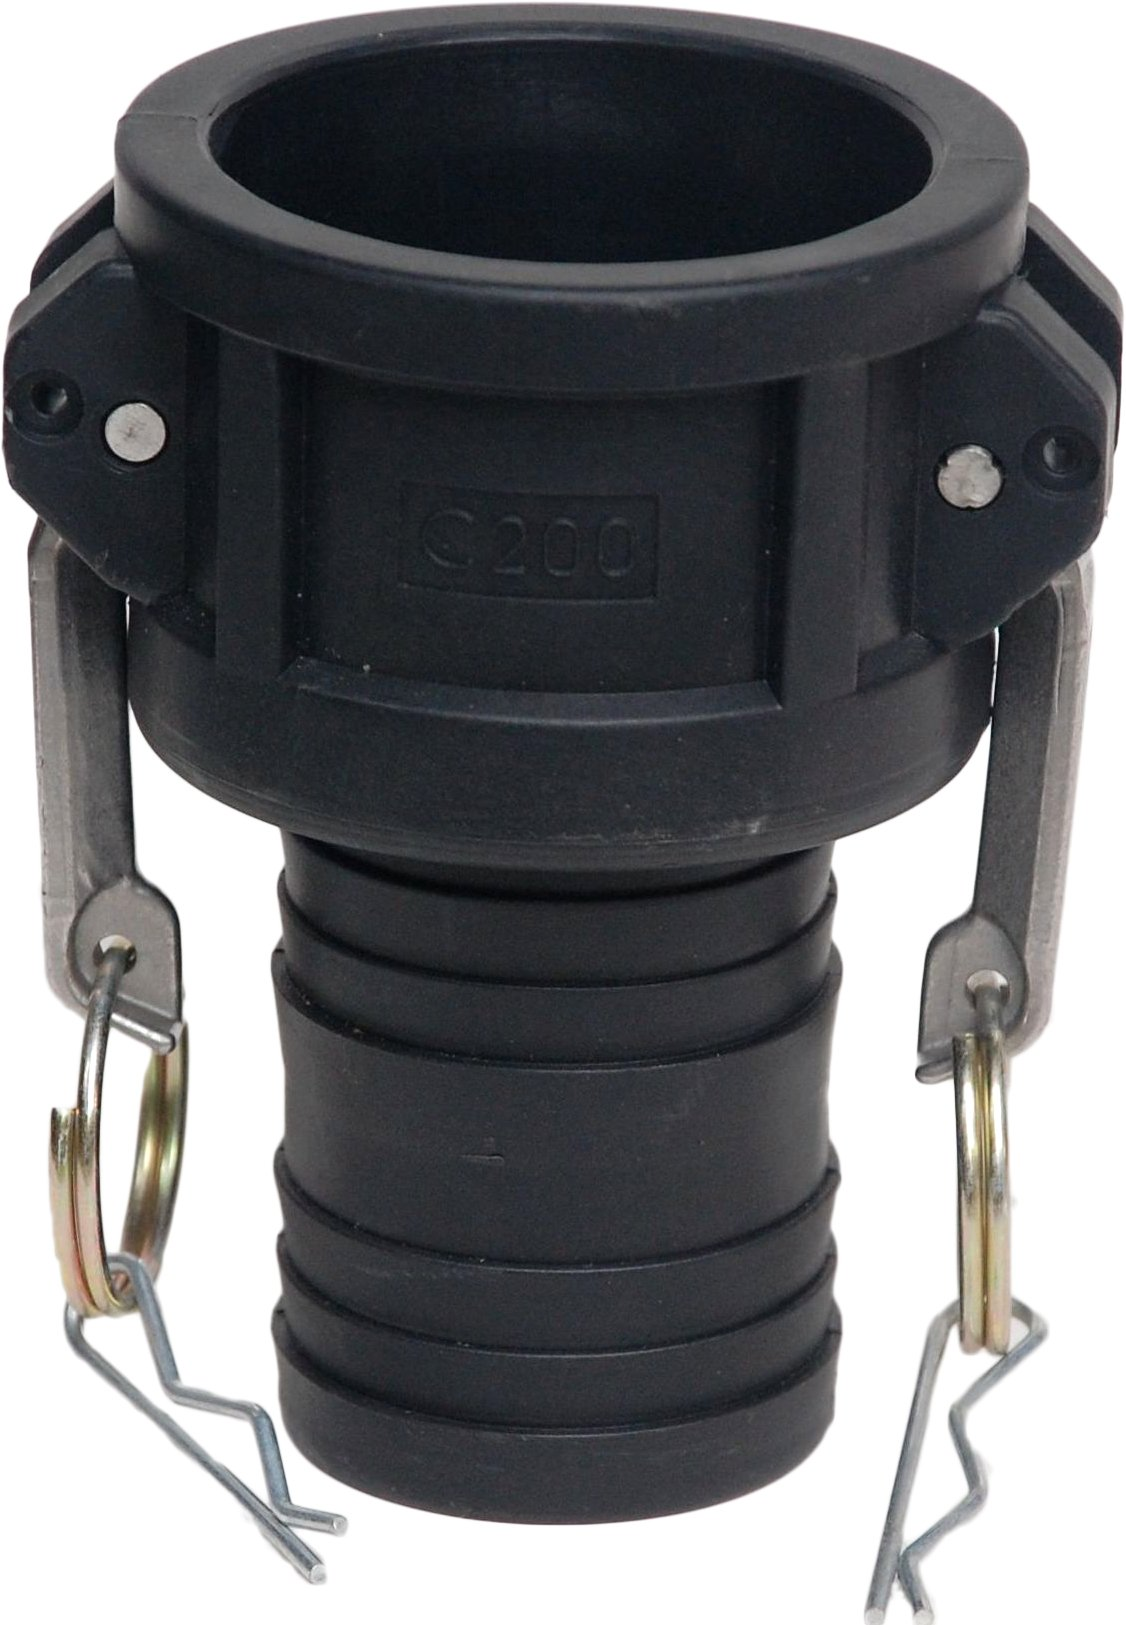 C 1.25 Cost Wise Polypropylene Camlock lay flat hose fittings TYPE C on one listing, the irrigation specialists